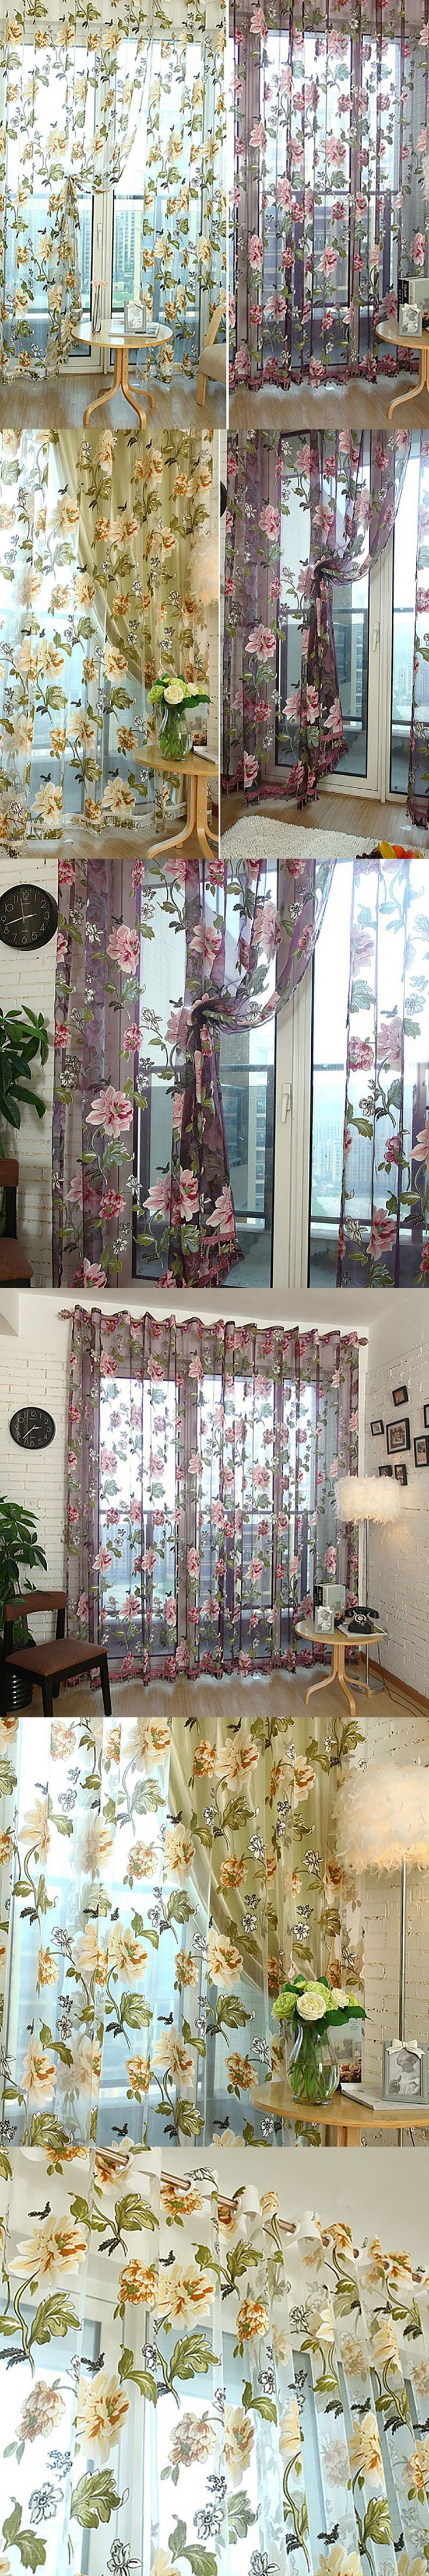 Pastoral Window Curtains Printed Flower Tulle Curtain For Bedroom Curtains Home Decor $11